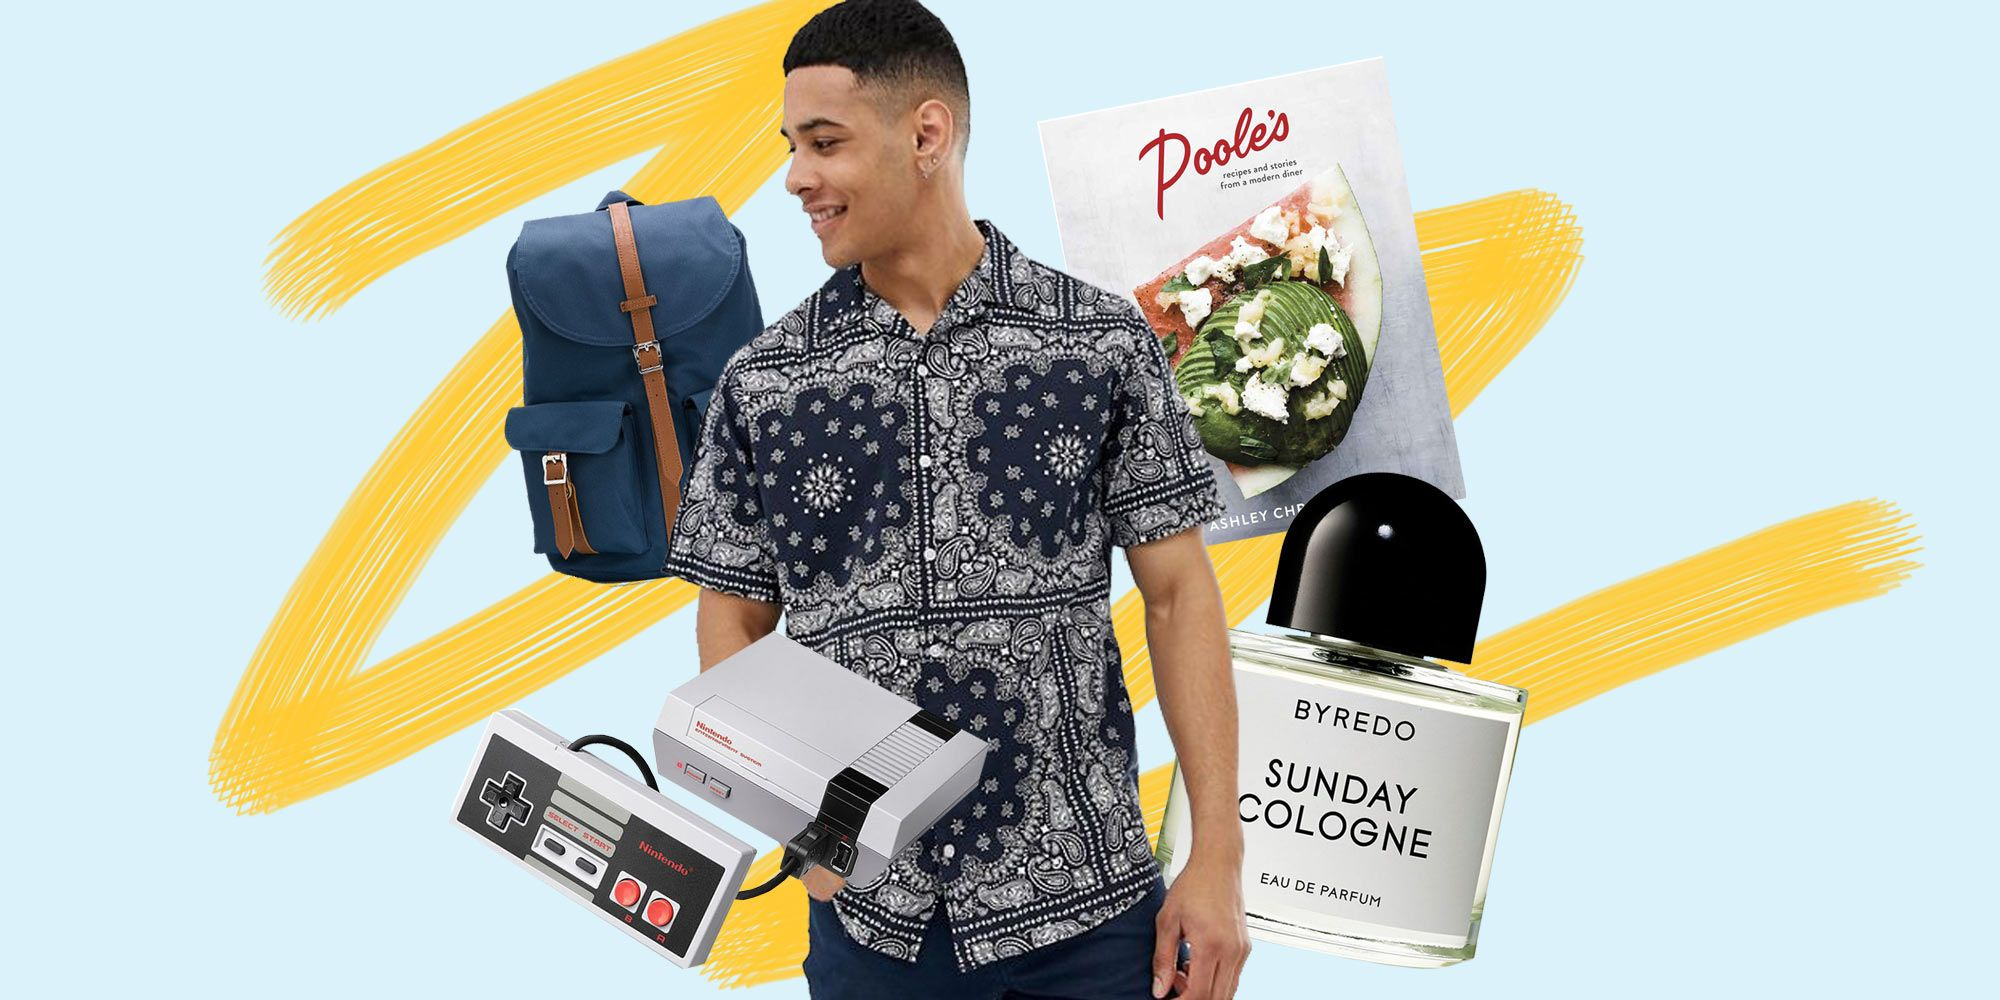 What to get your boyfriend when you just started dating